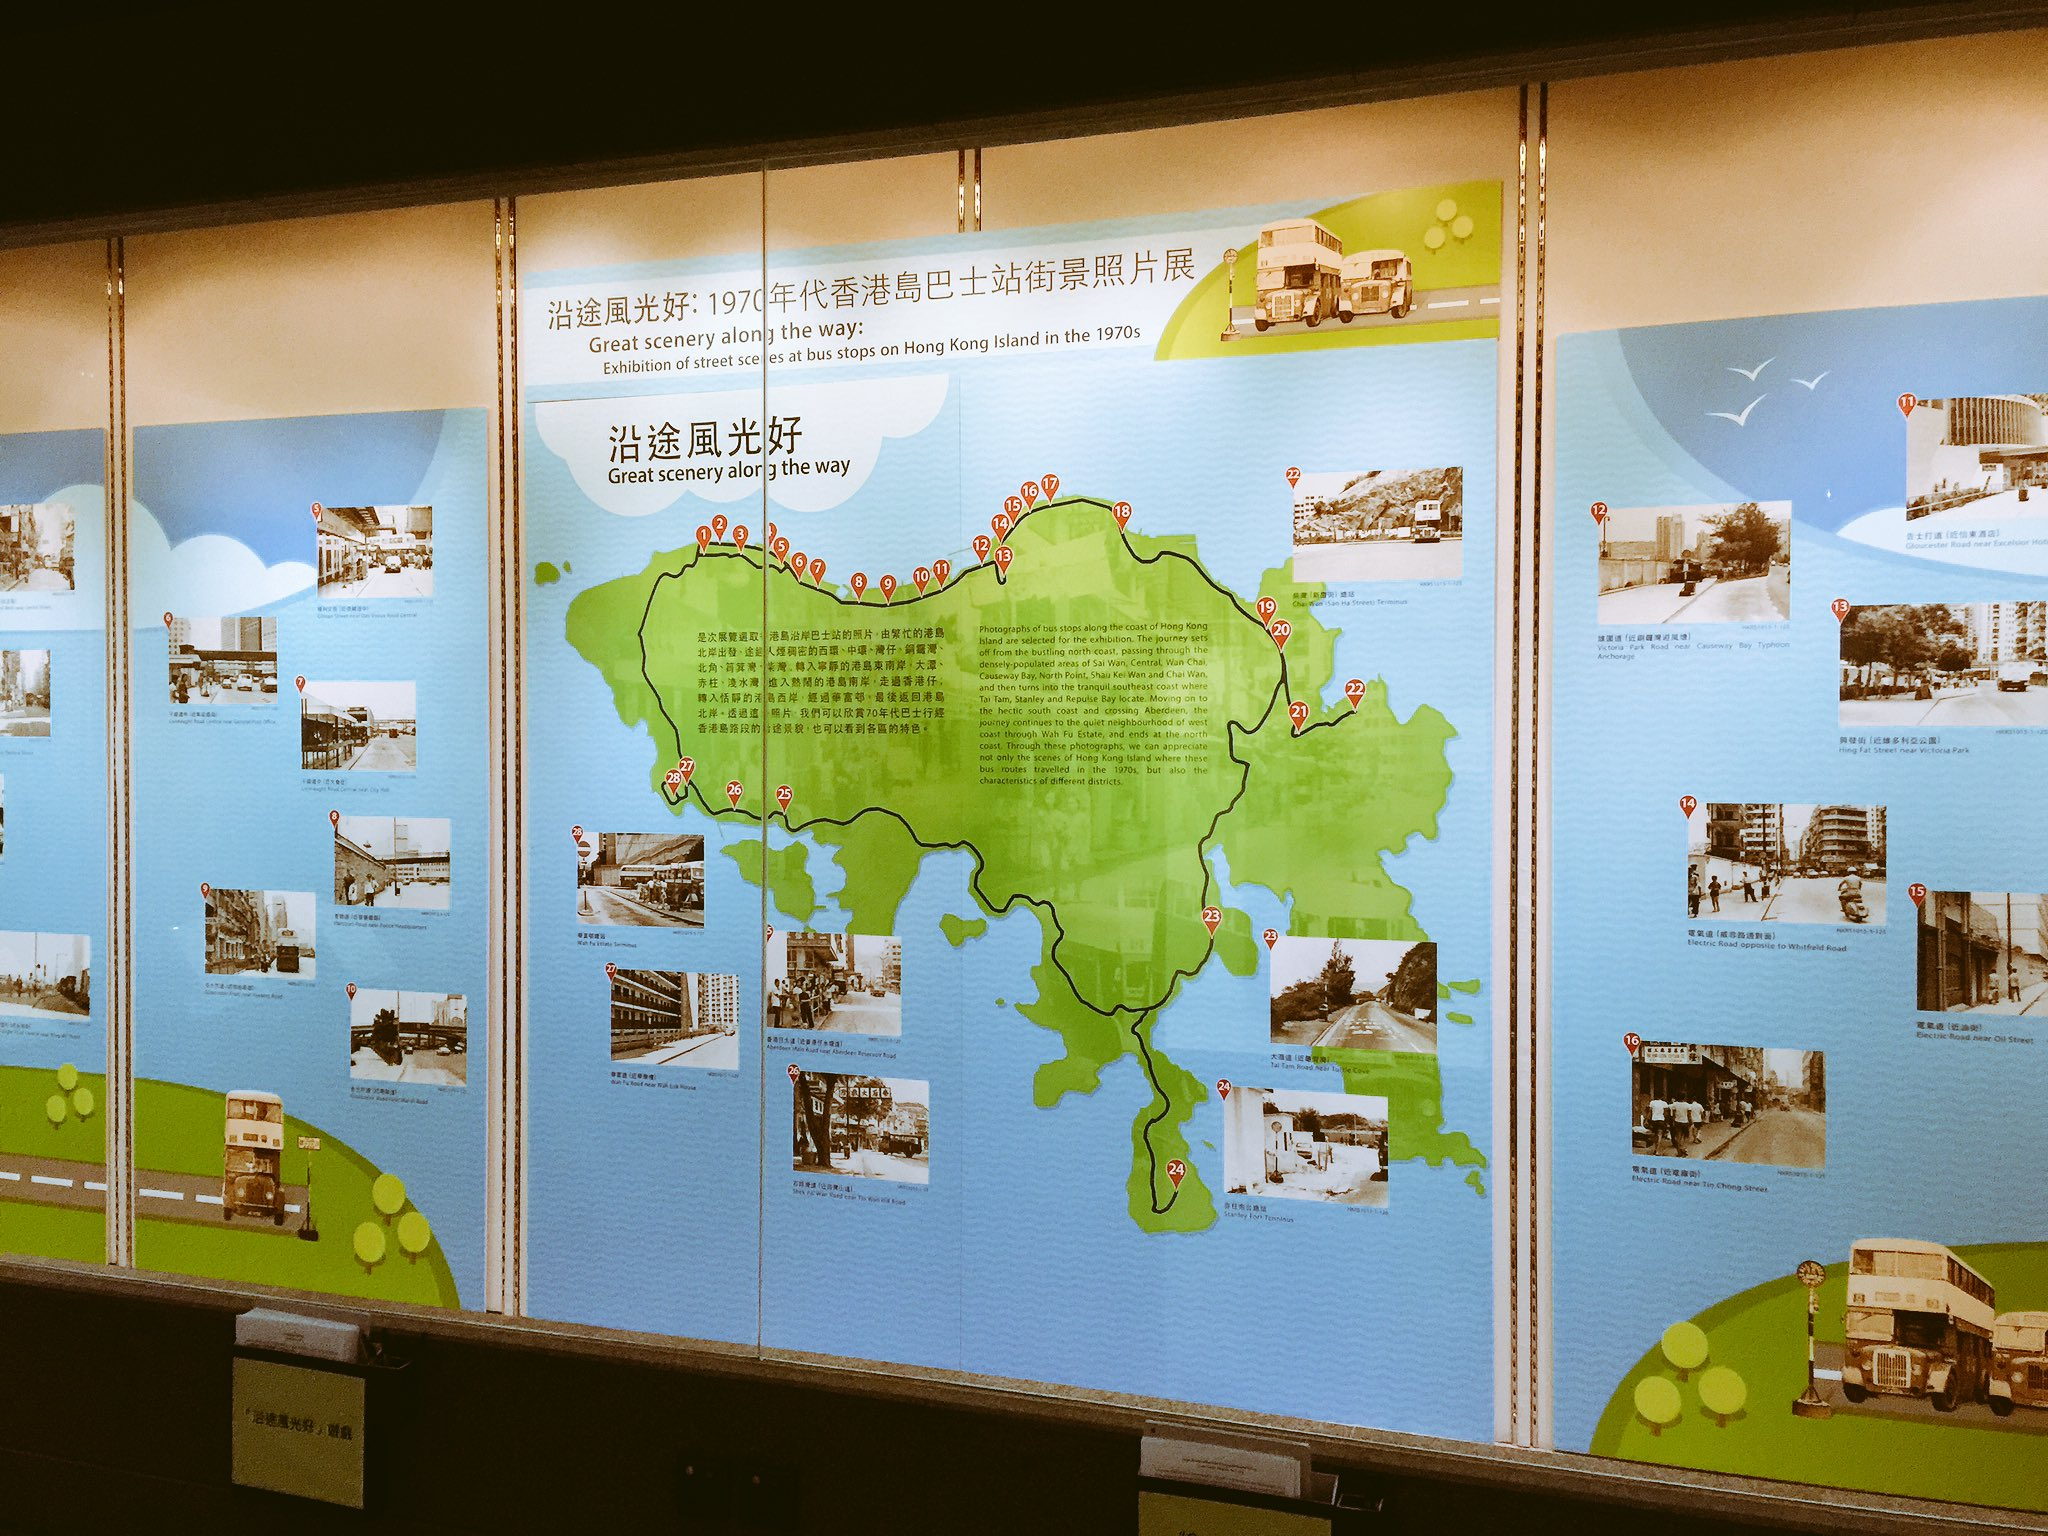 'Great Scenery Along the Way' exhibition about 1970s HK Island bus stop photographs, at HK PRO. https://t.co/0GWMmSxS7v